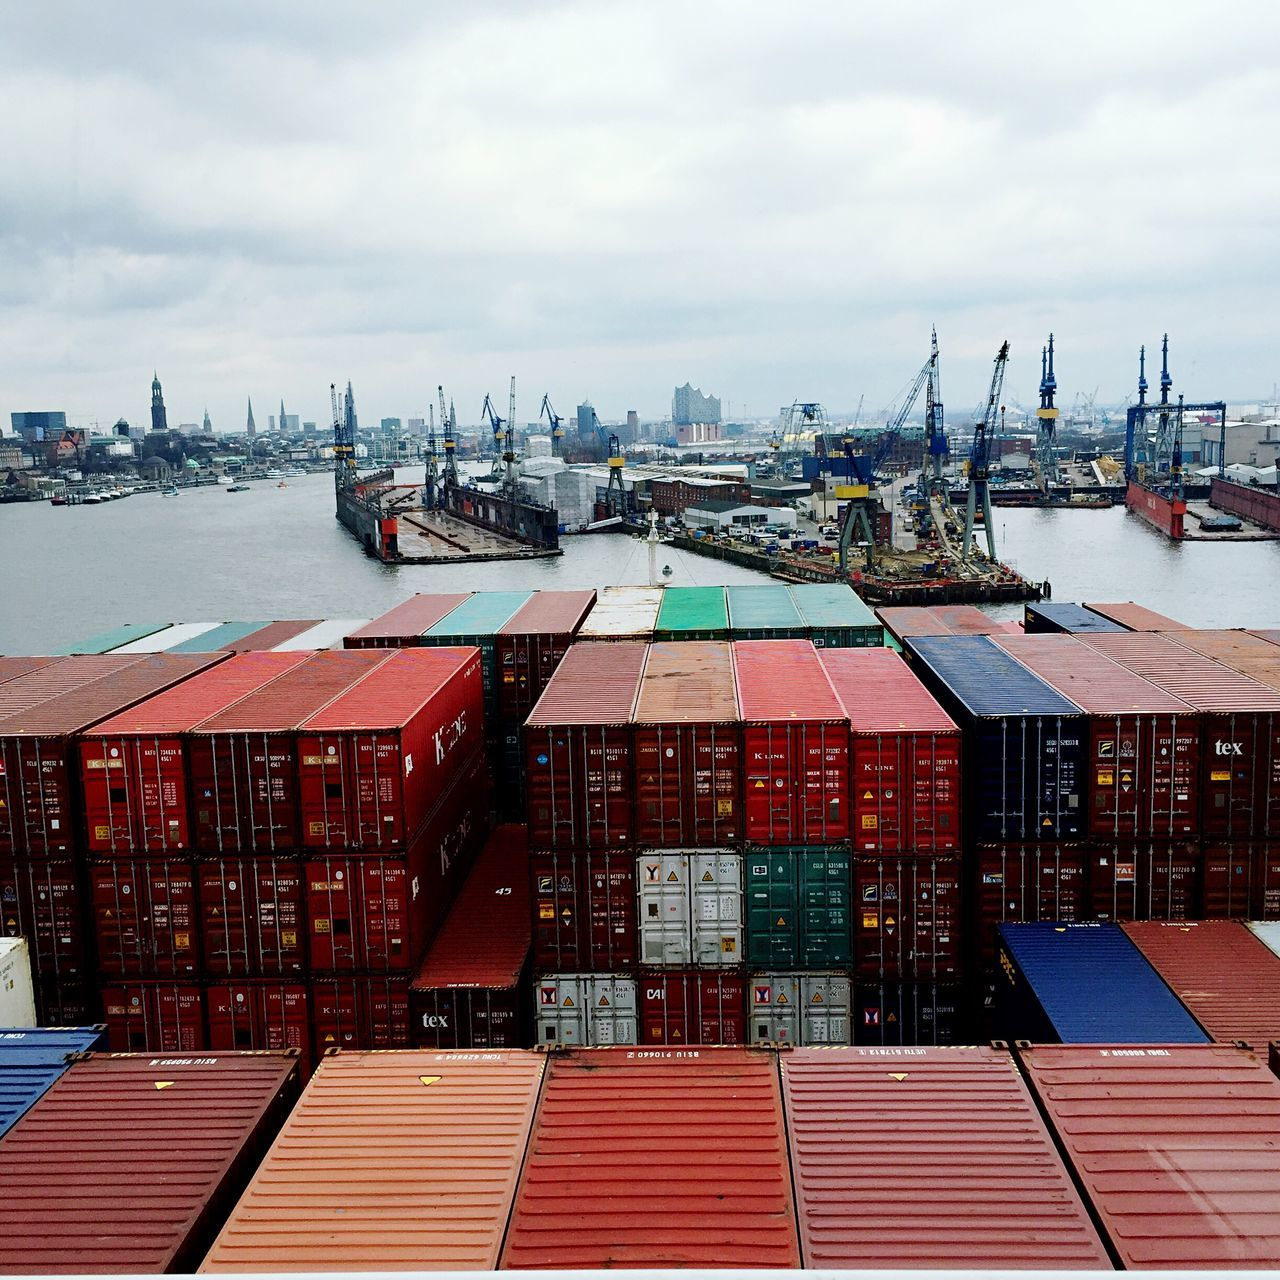 Cargo Container Freight Transportation Commercial Dock Shipping  Harbor Industry Transportation Sky High Angle View Shipyard Large Group Of Objects From Above  Hamburg Shipping  Container Ship Captain Elbphilharmonie Harbor River No People Built Structure Outdoors Day Sea Water